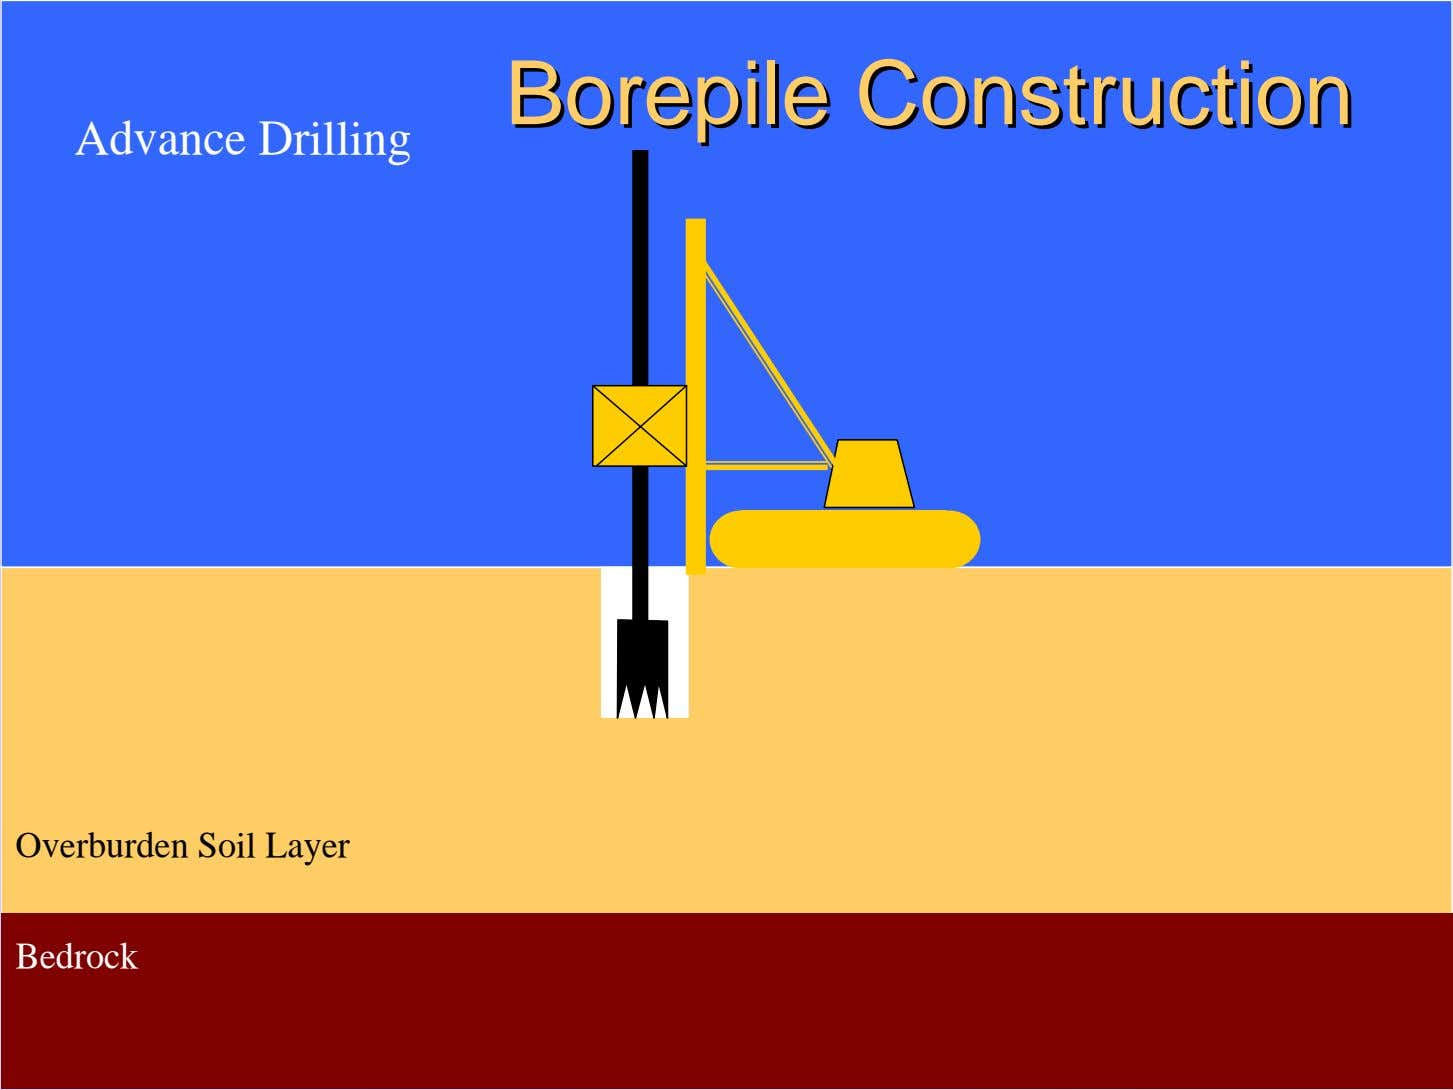 BorepileBorepile ConstructionConstruction Advance Drilling Overburden Soil Layer Bedrock